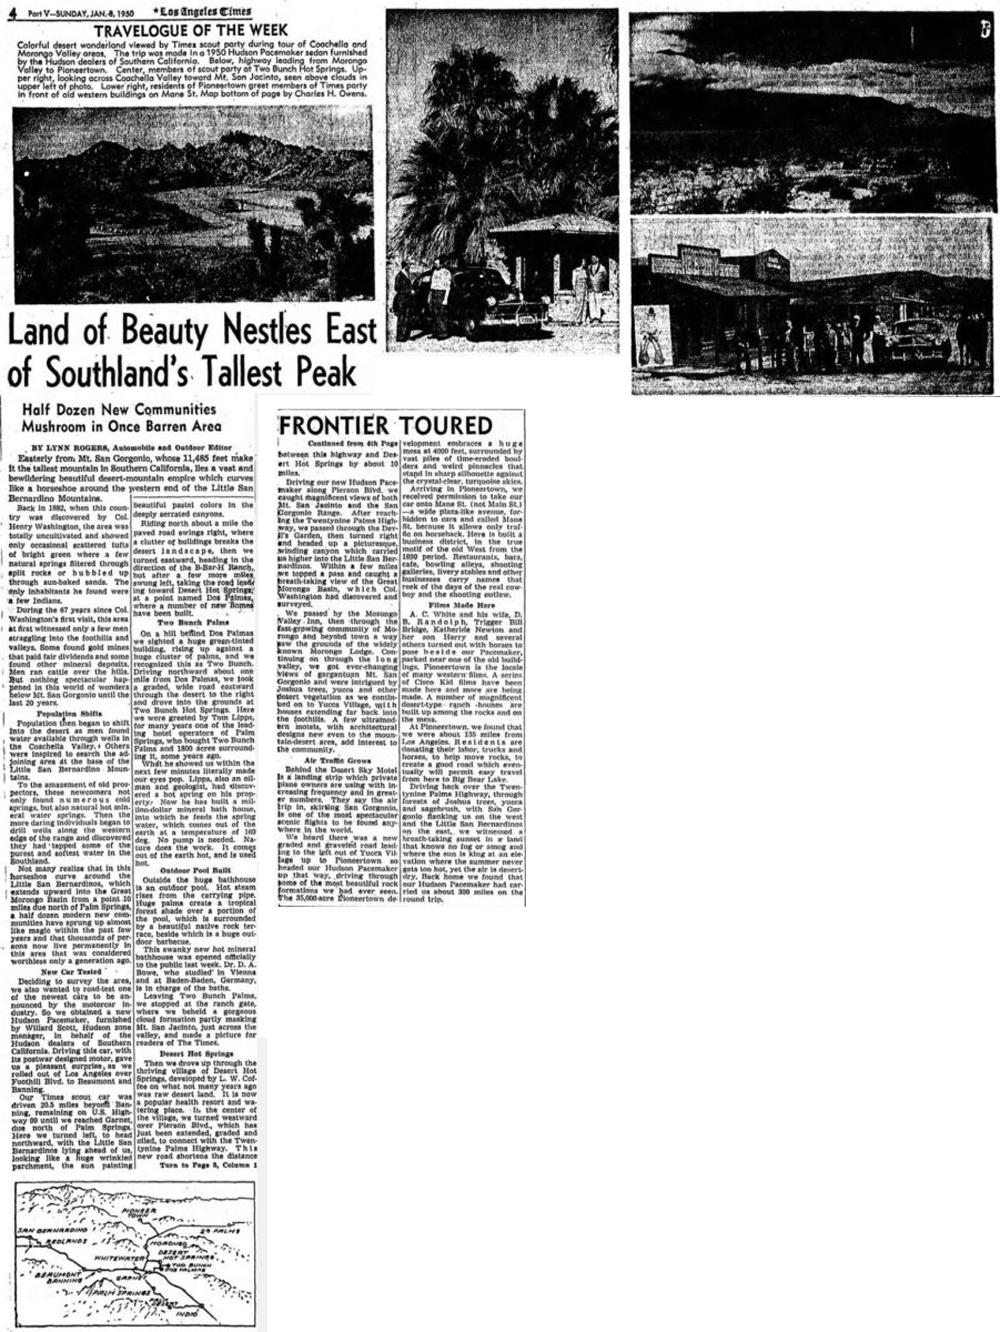 Jan. 8, 1950 - The Los Angeles Times artcile clipping